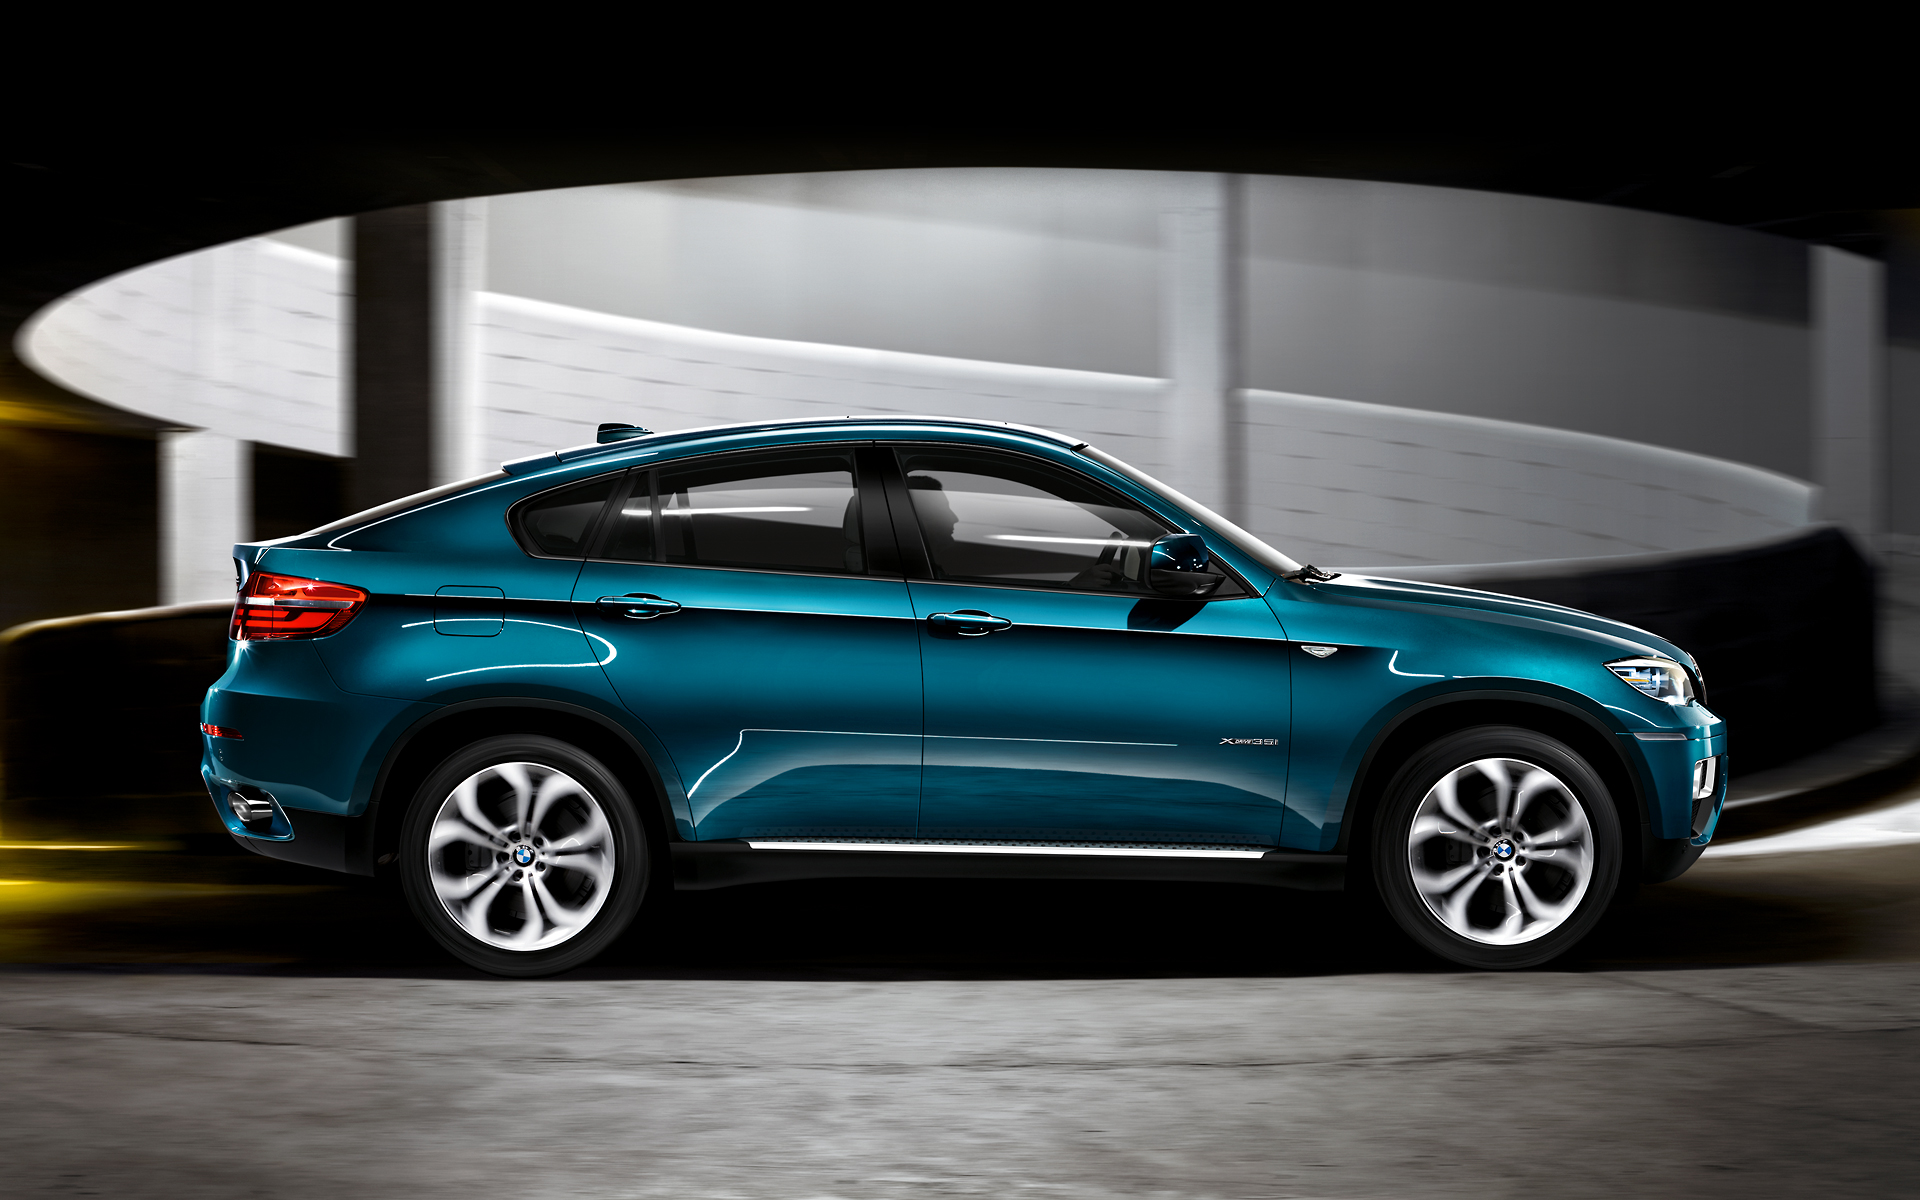 2013 BMW X6 LCI (Facelift) Announced - XBimmers.com | BMW X6 Forum X5 ...